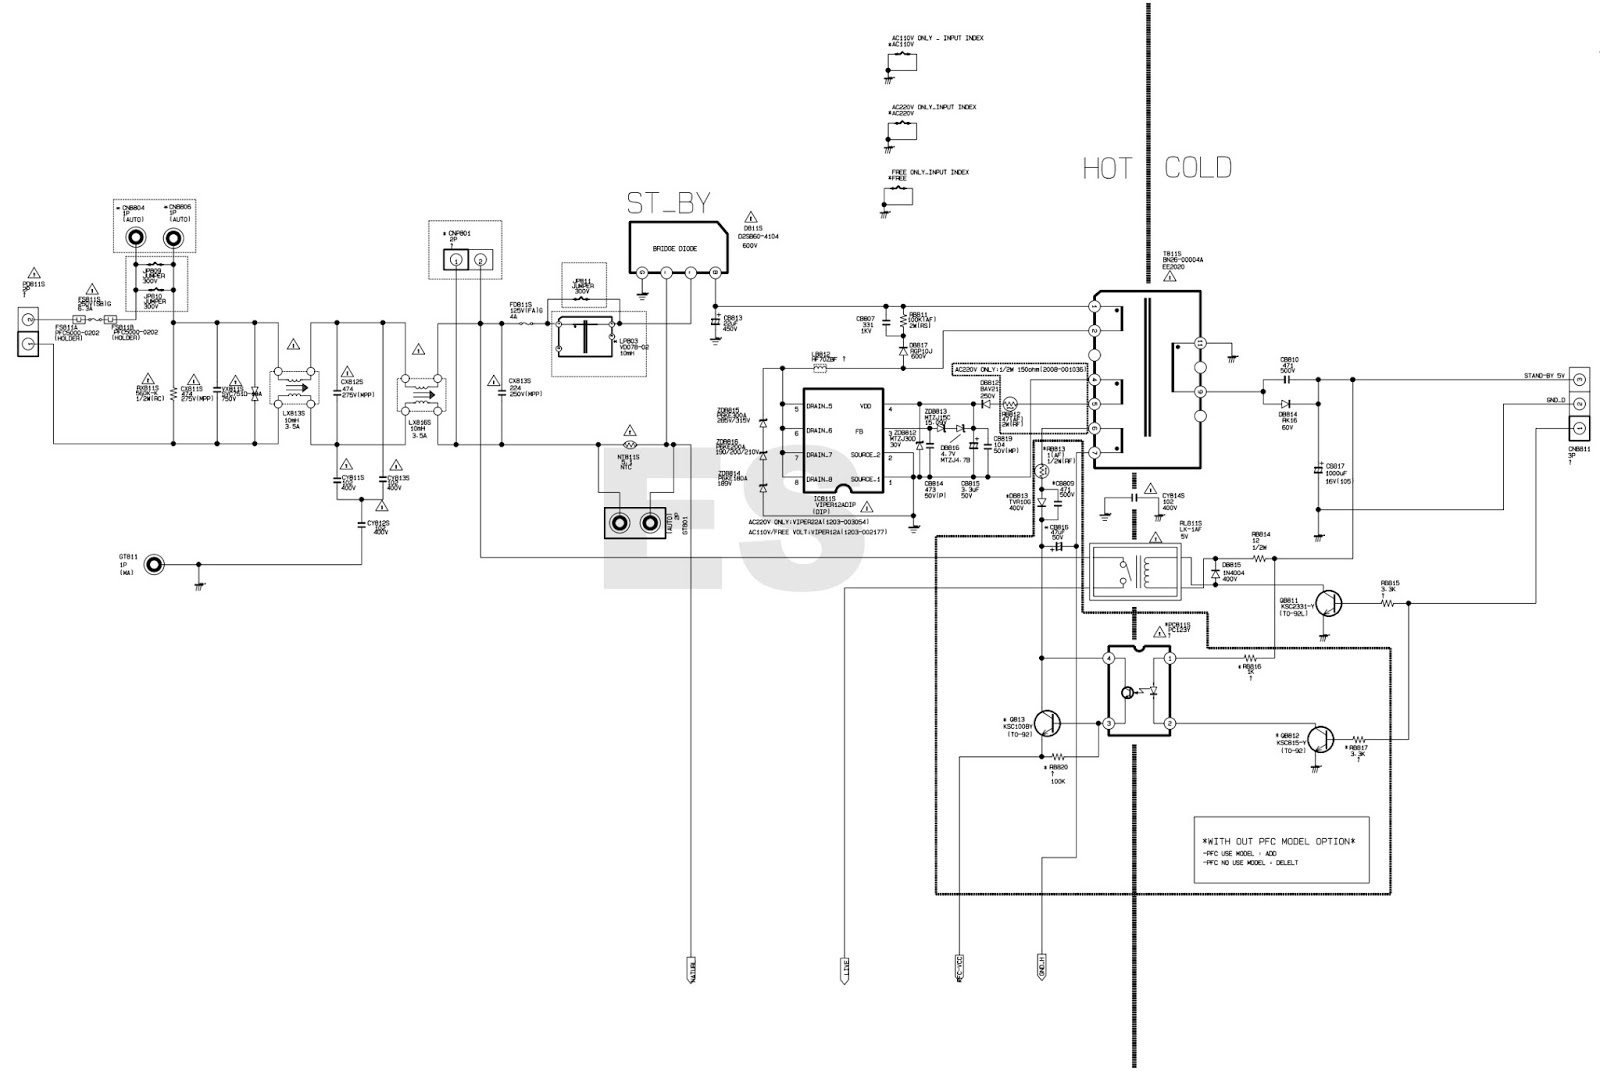 medium resolution of firmware download samsung bn44 00622b power supply board schematic diagram viper12a str